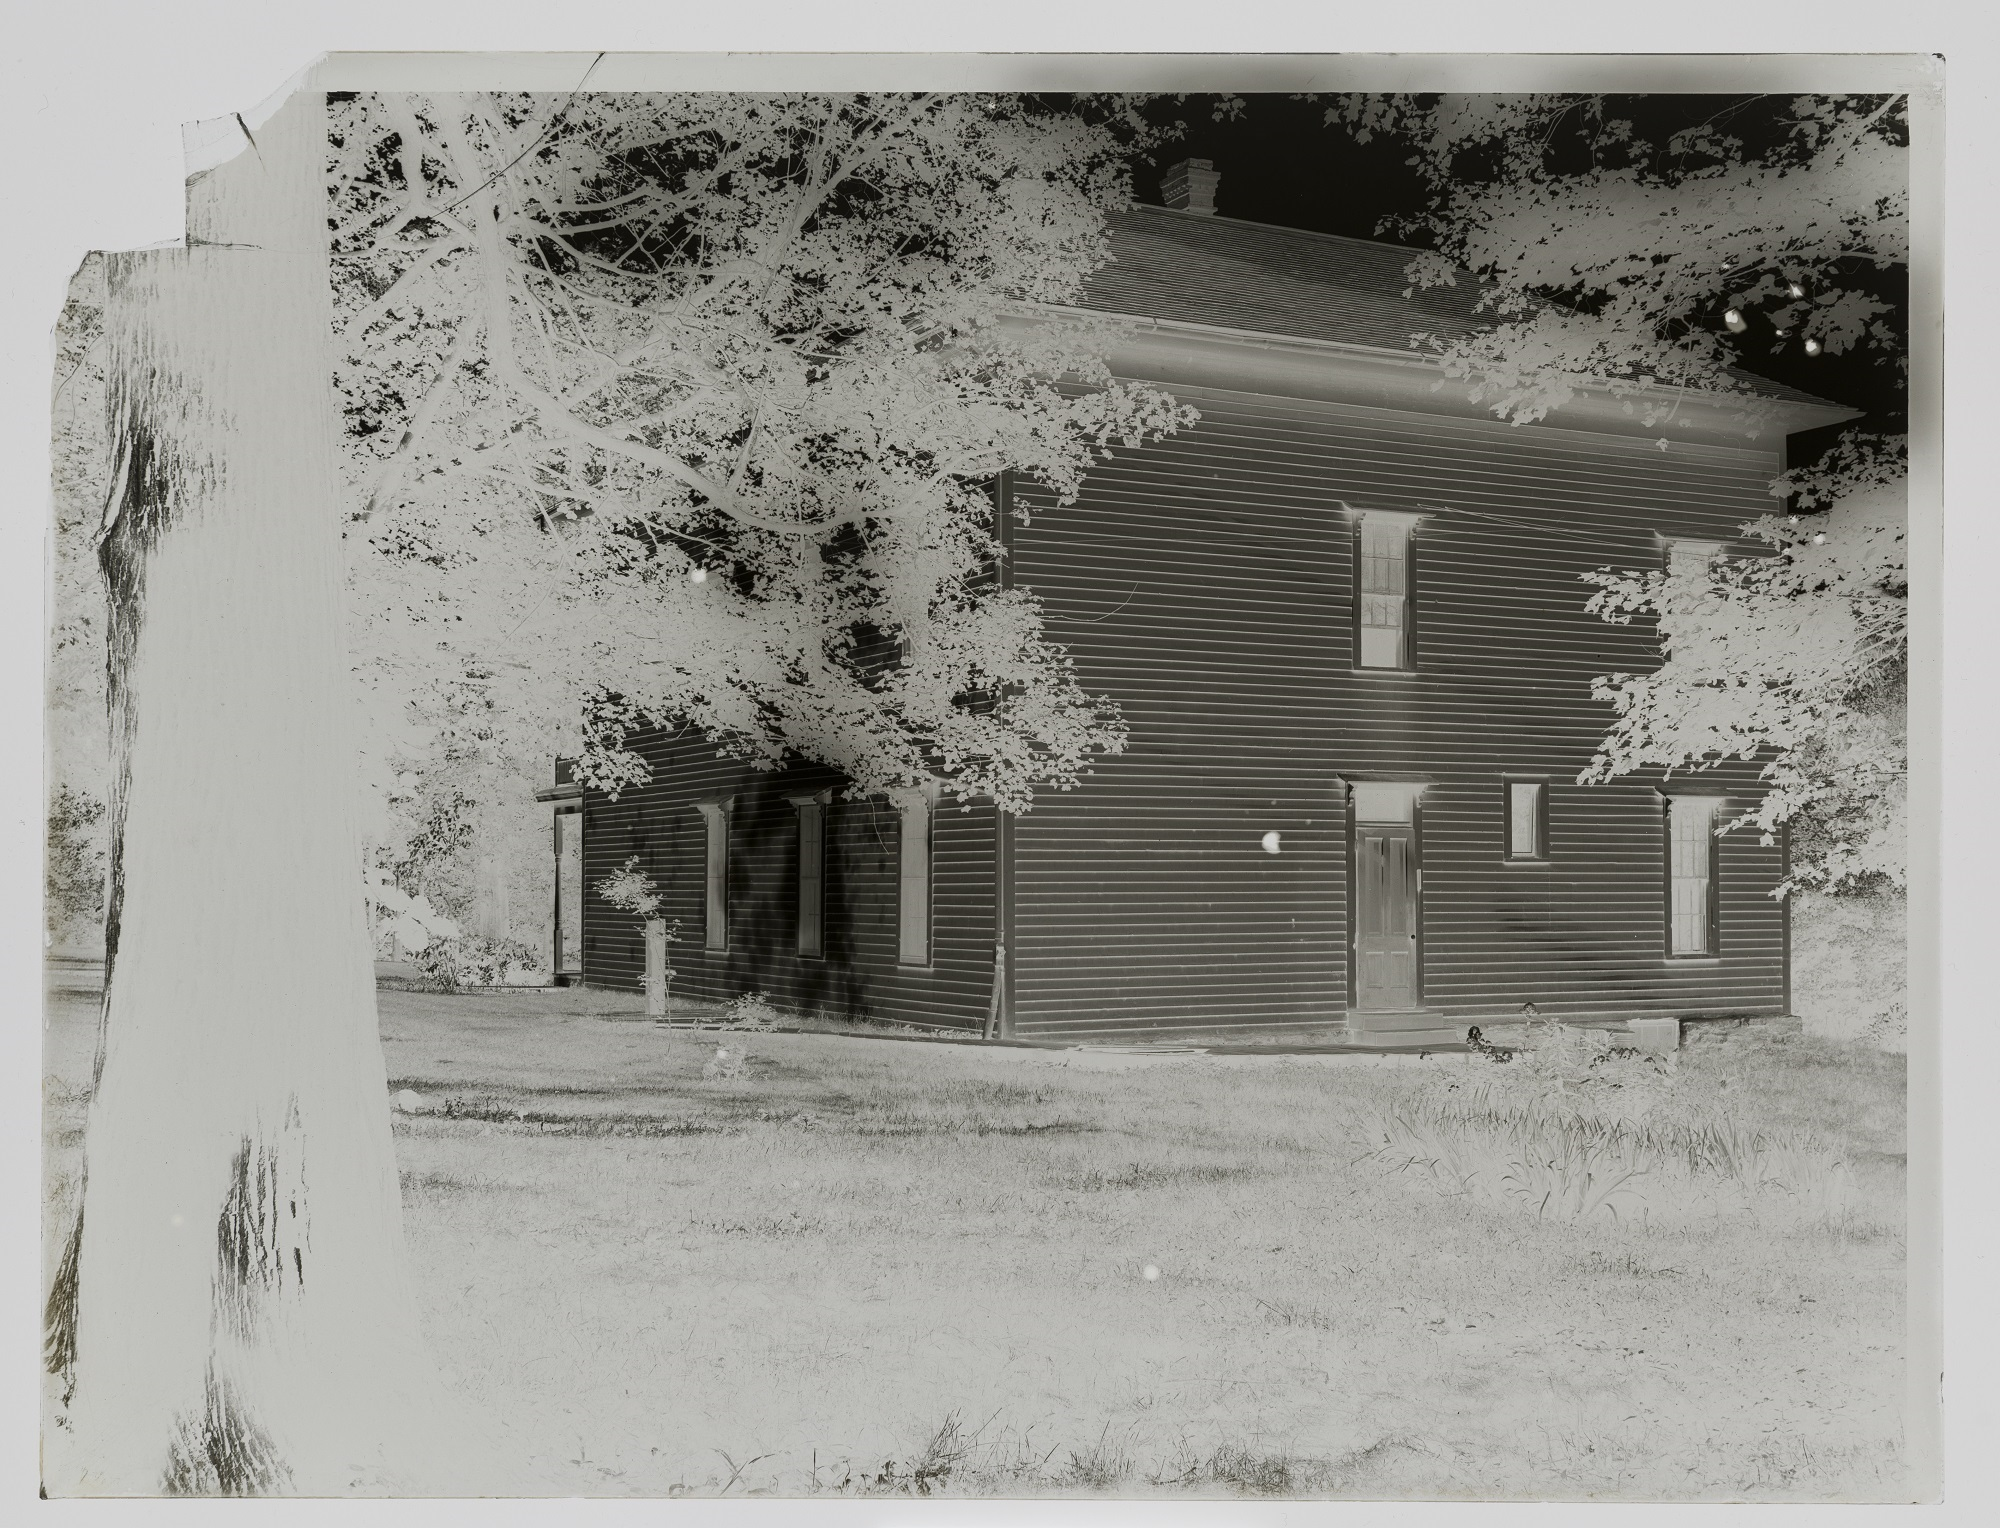 A glass plate negative of a St. Olaf campus building by O.G. Felland.